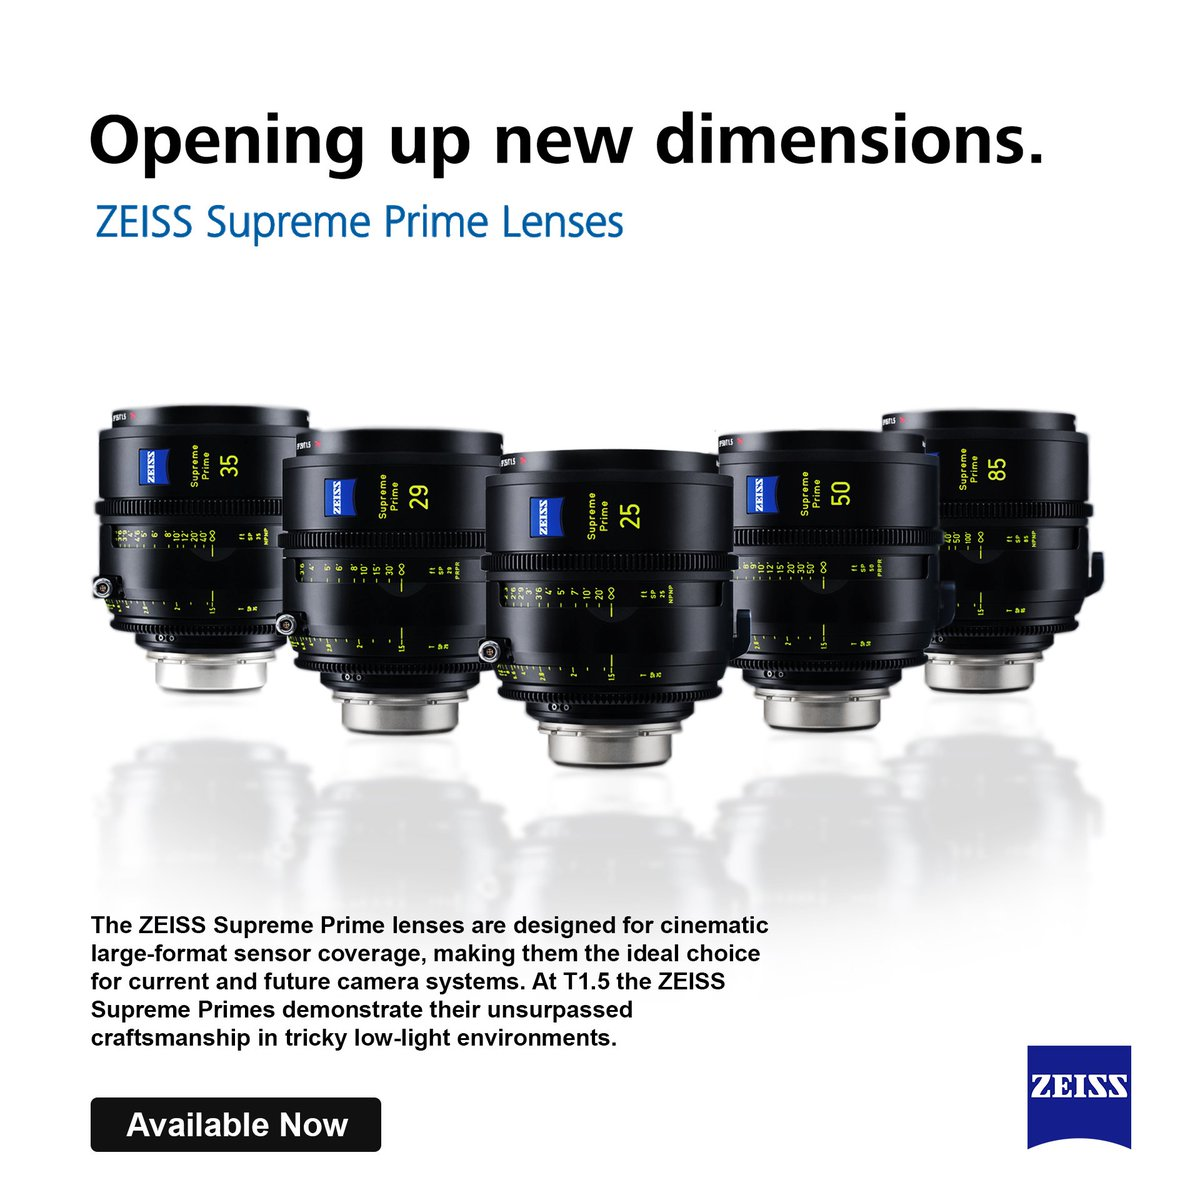 ... ZEISS Supreme Prime lenses  that means consistent coverage, color  rendering, aperture, size, weight and ergonomics. - Available now! 0e83b6f407